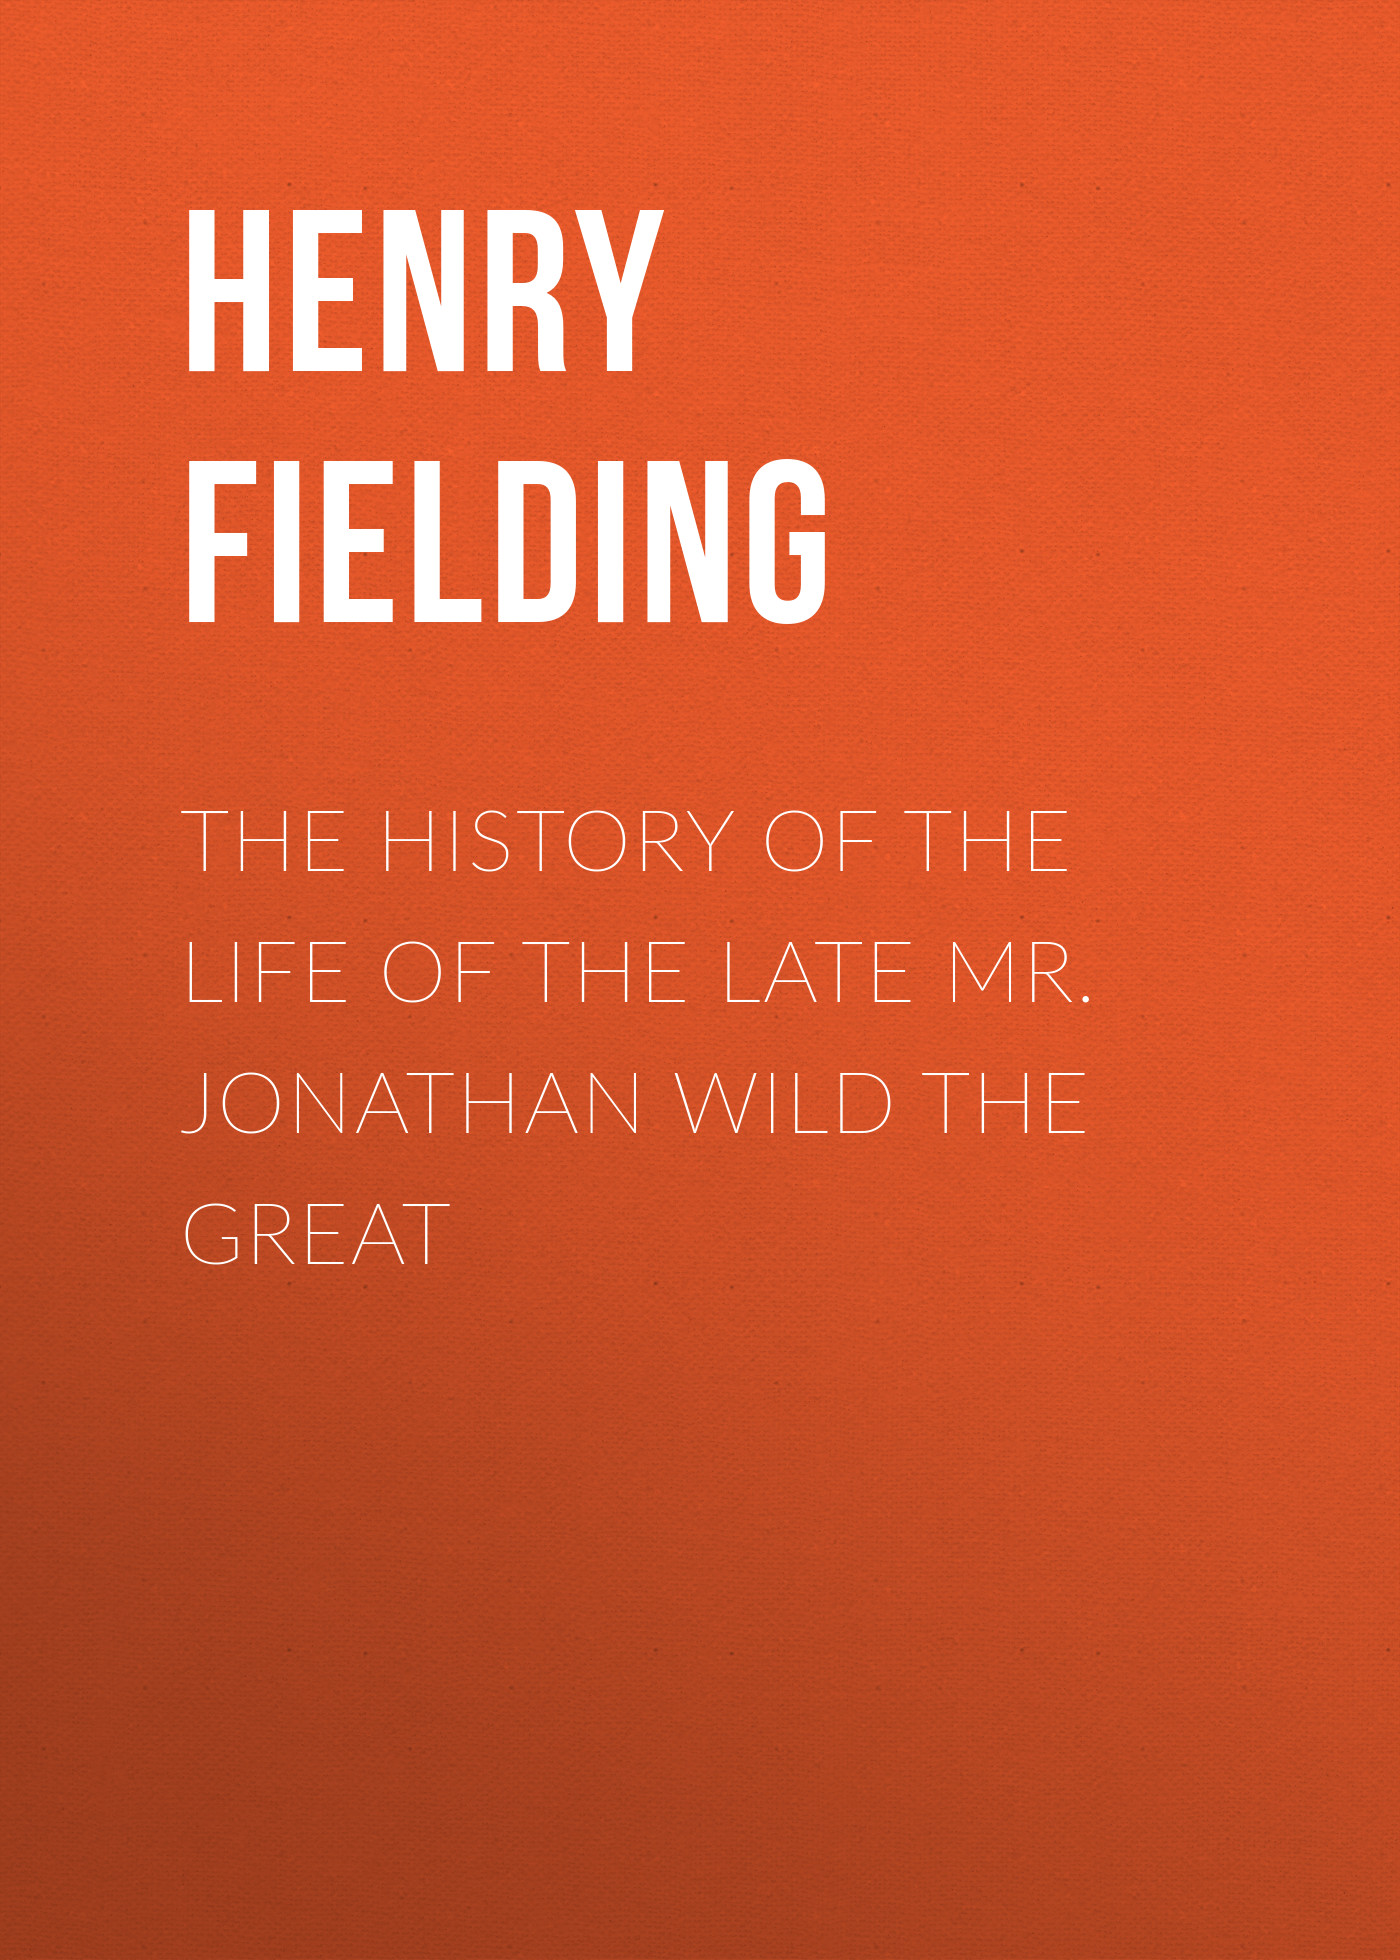 Генри Филдинг The History of the Life of the Late Mr. Jonathan Wild the Great the great life photographers